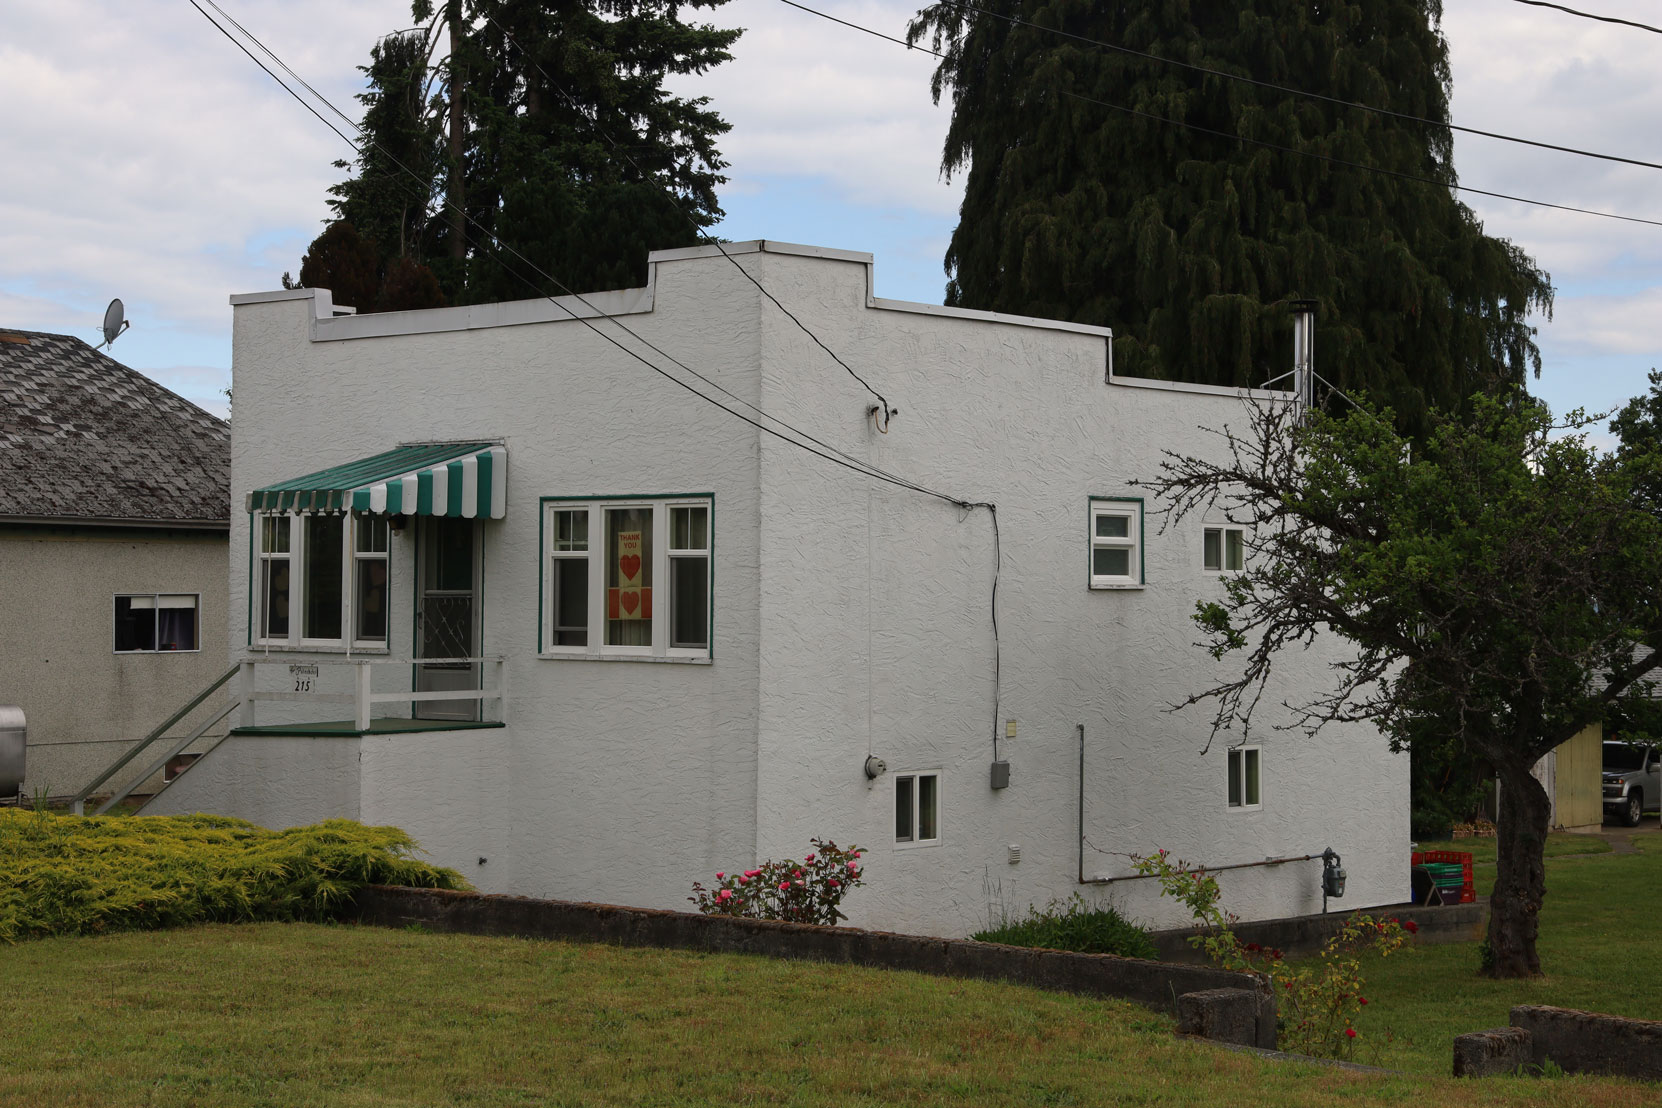 215 Methuen Street, Ladysmith, B.C., built in 1935 (photo: Mark Anderson)